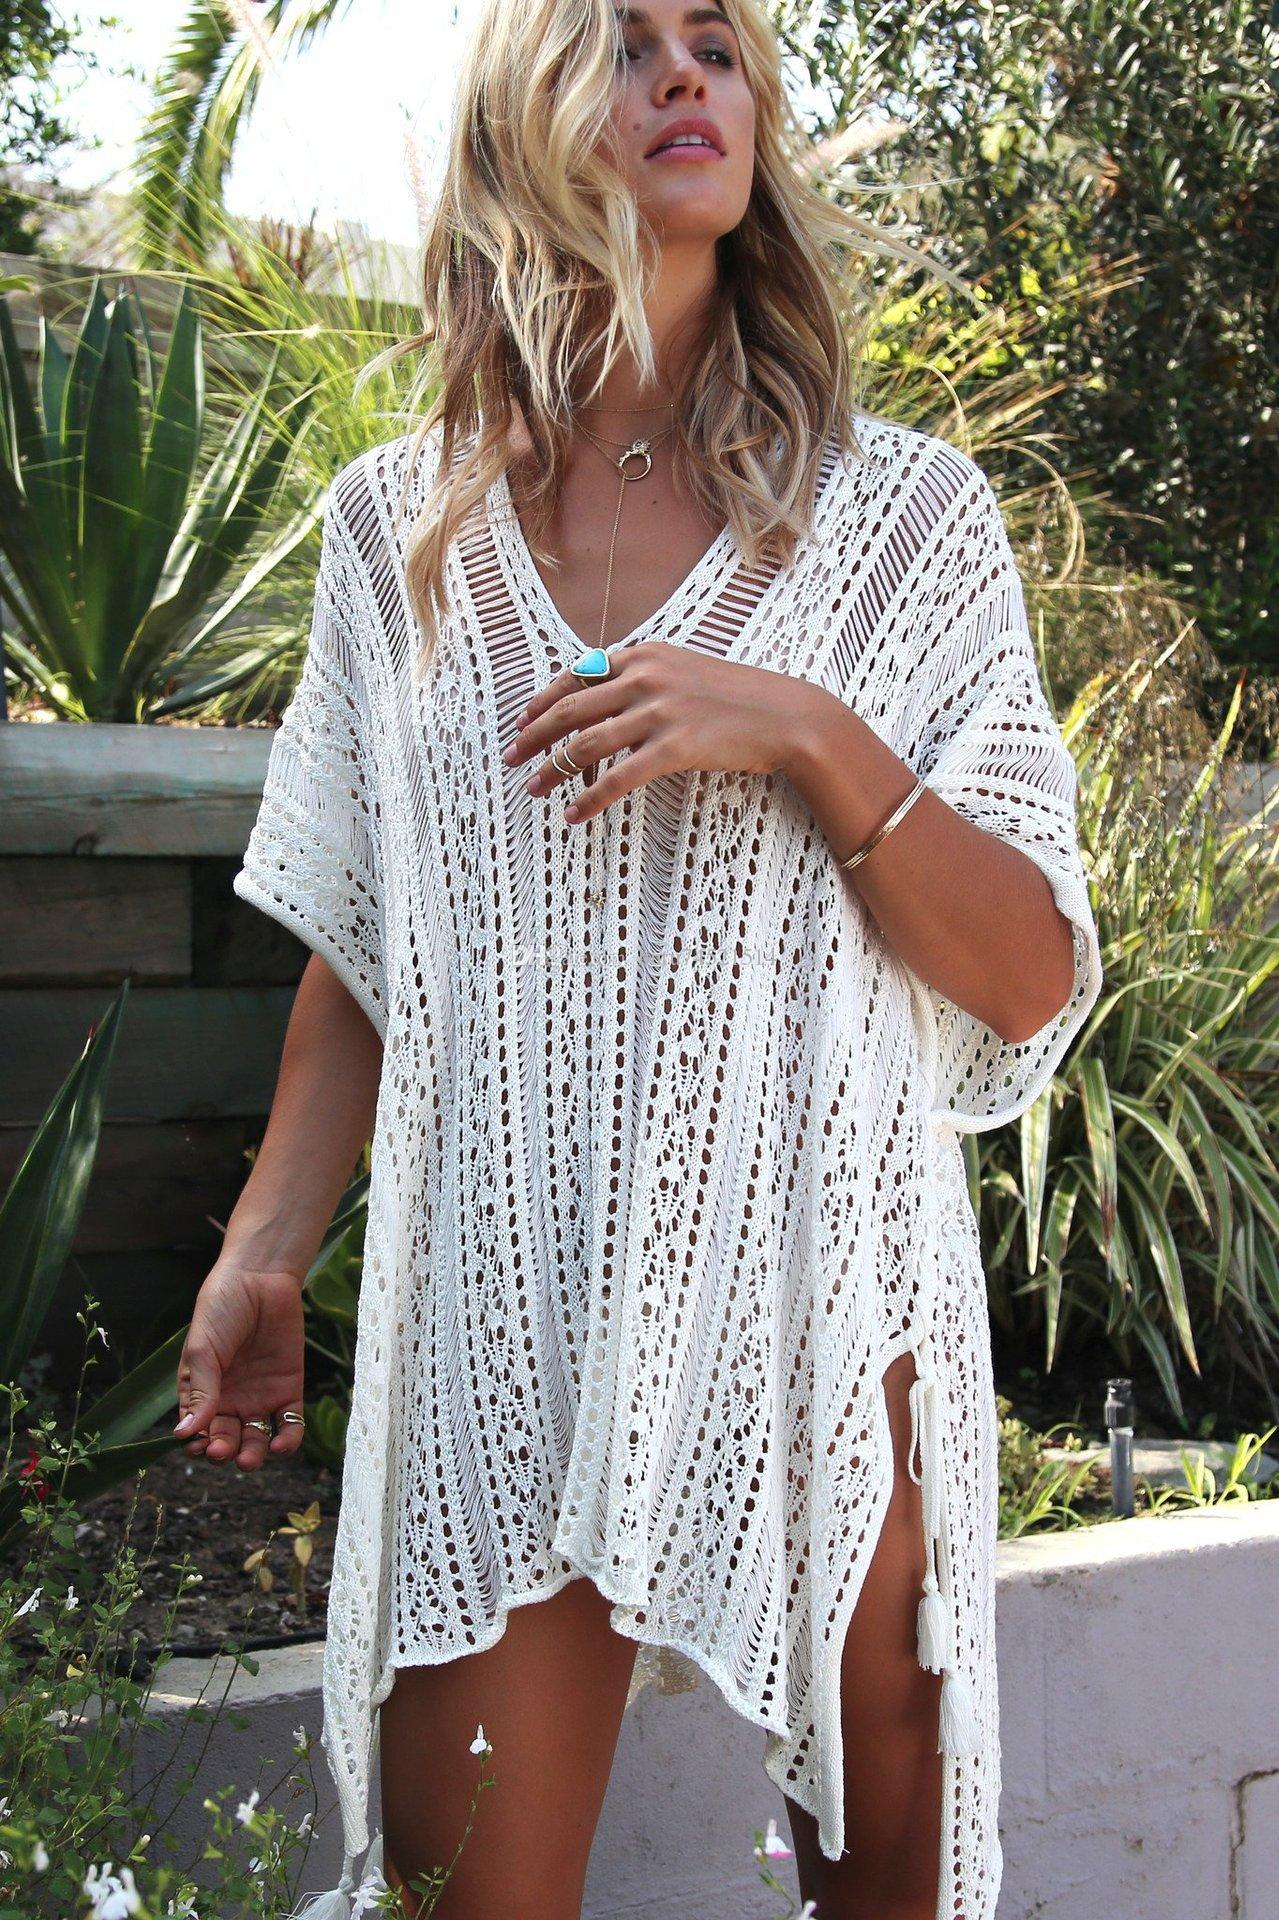 3c3eb7586a2da 2019 2018 New Beach Cover Up Bikini Crochet Knitted Tie Beachwear Summer  Swimsuit Cover Up Sexy Beach Dress From Hutu74521514